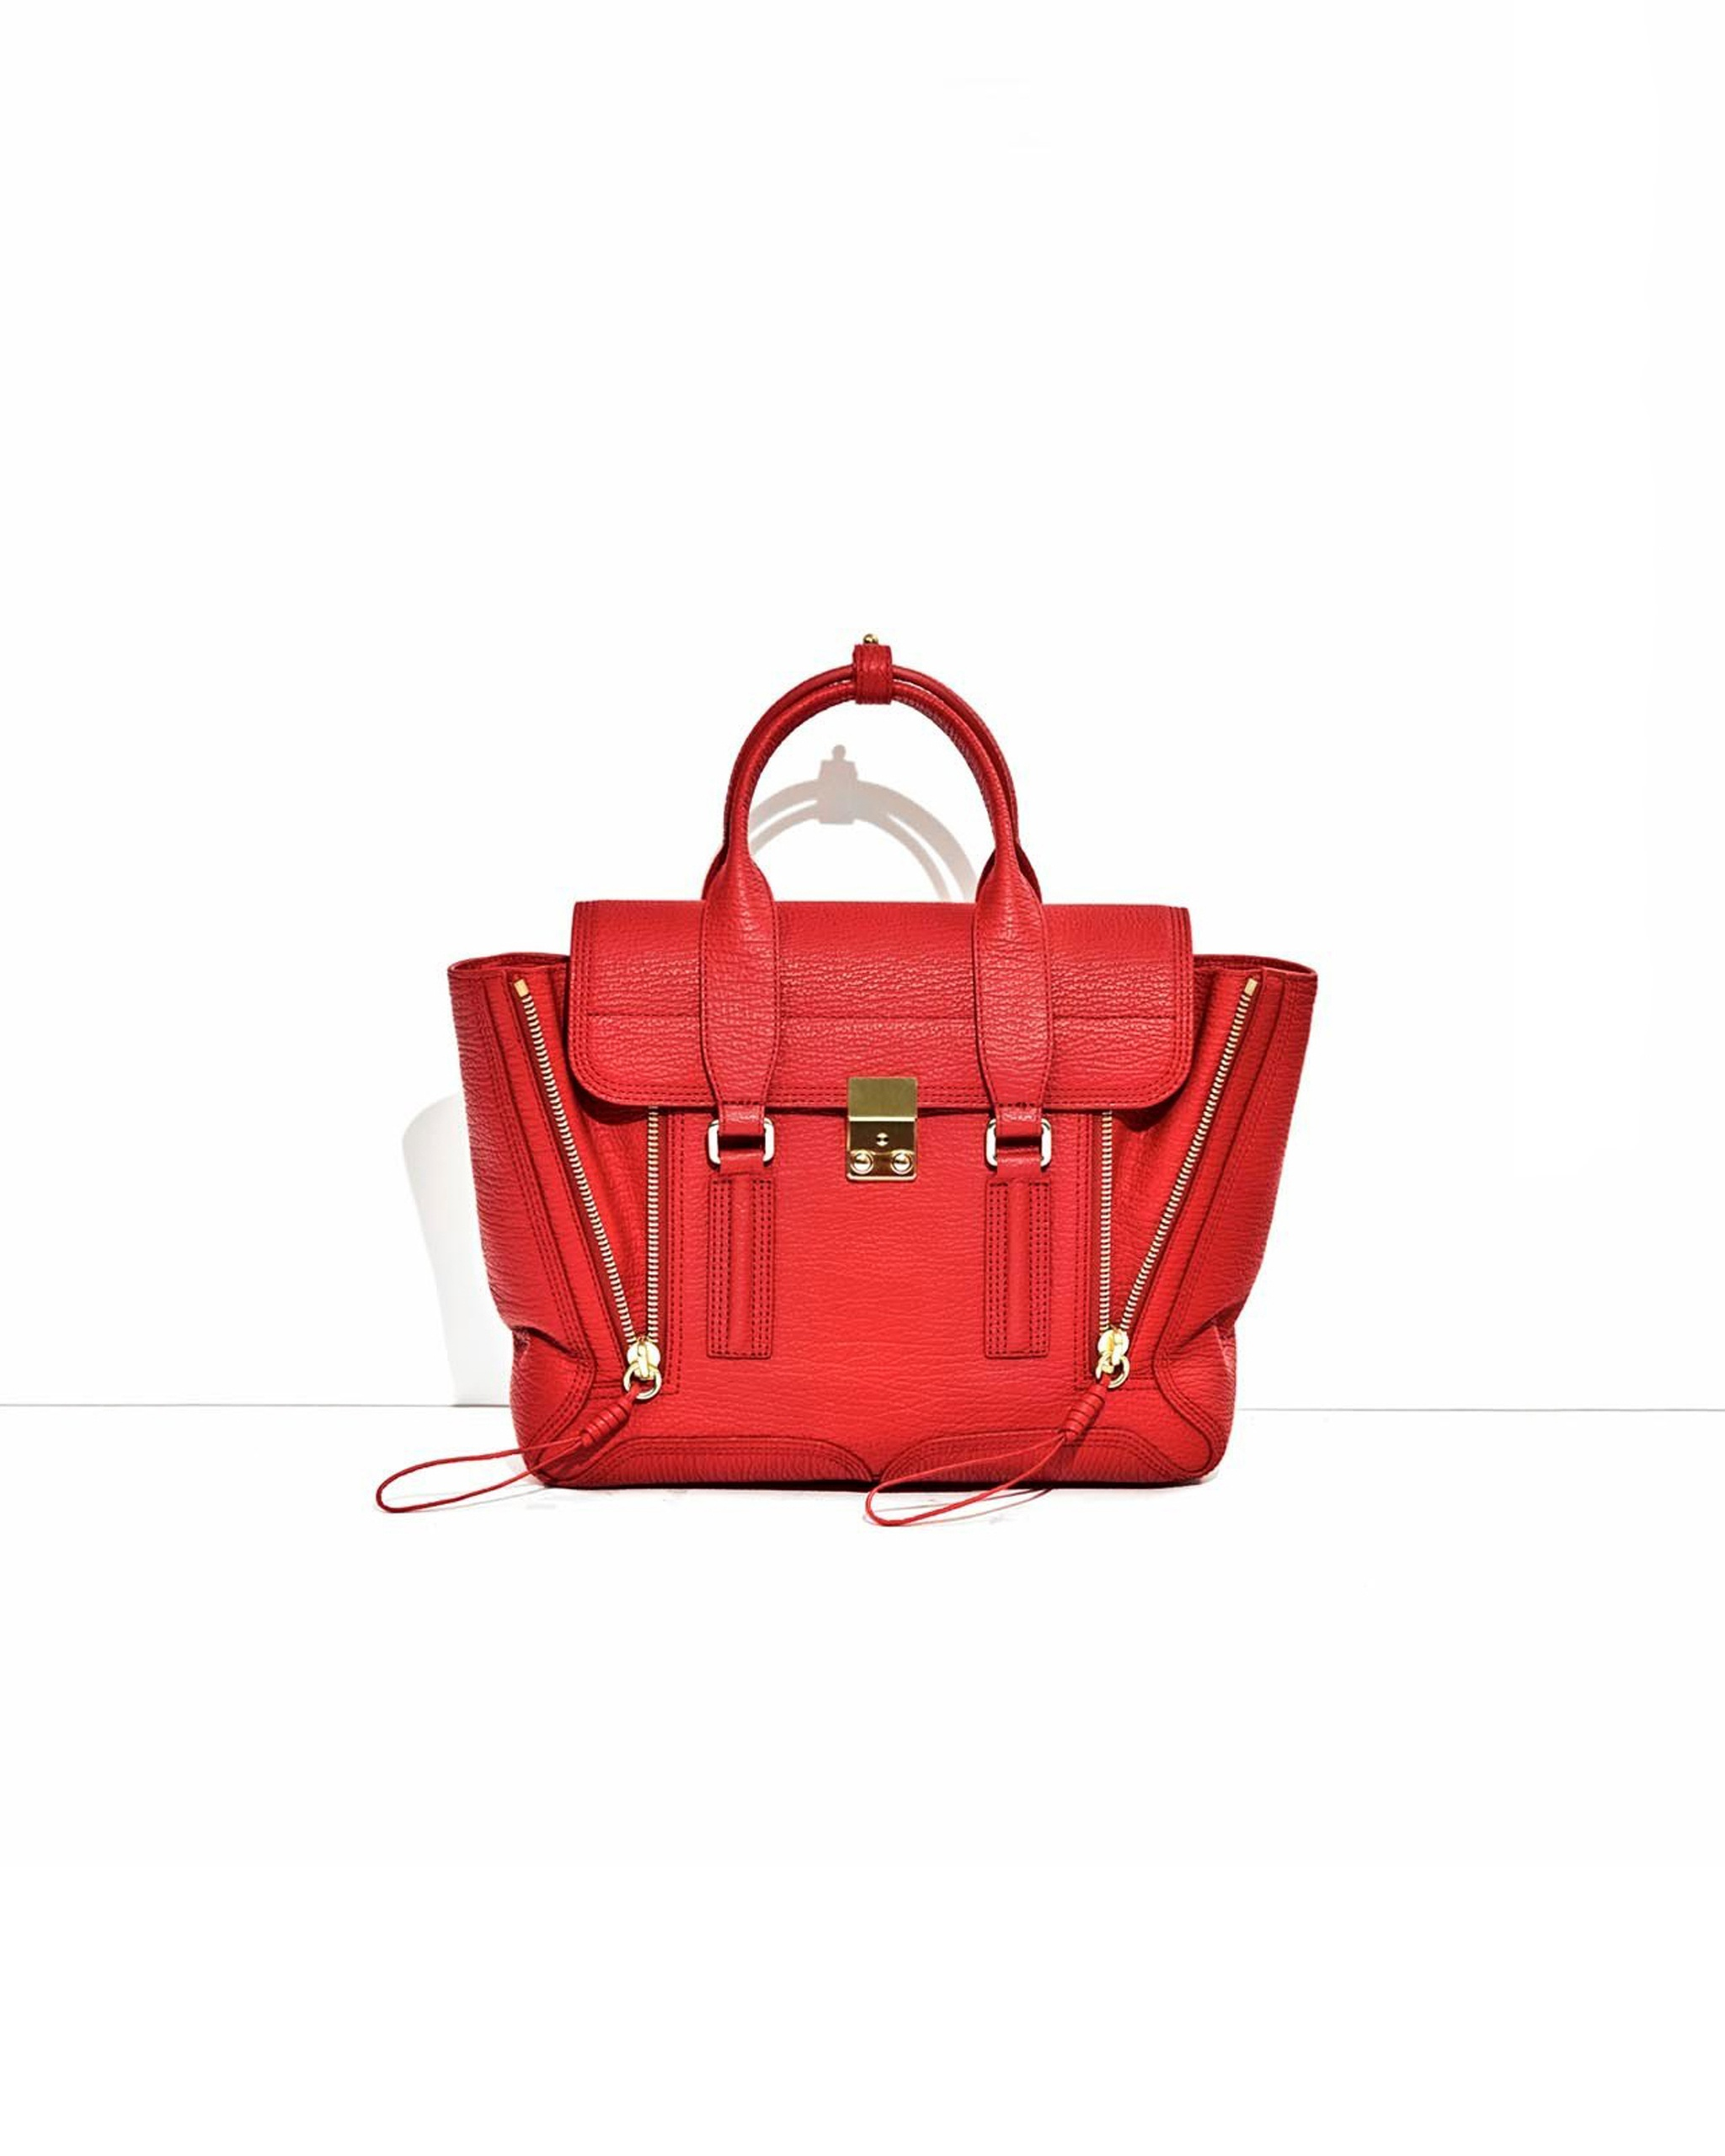 3-1-phillip-lim-pashli-medium-satchel_13570334_17905954_2048